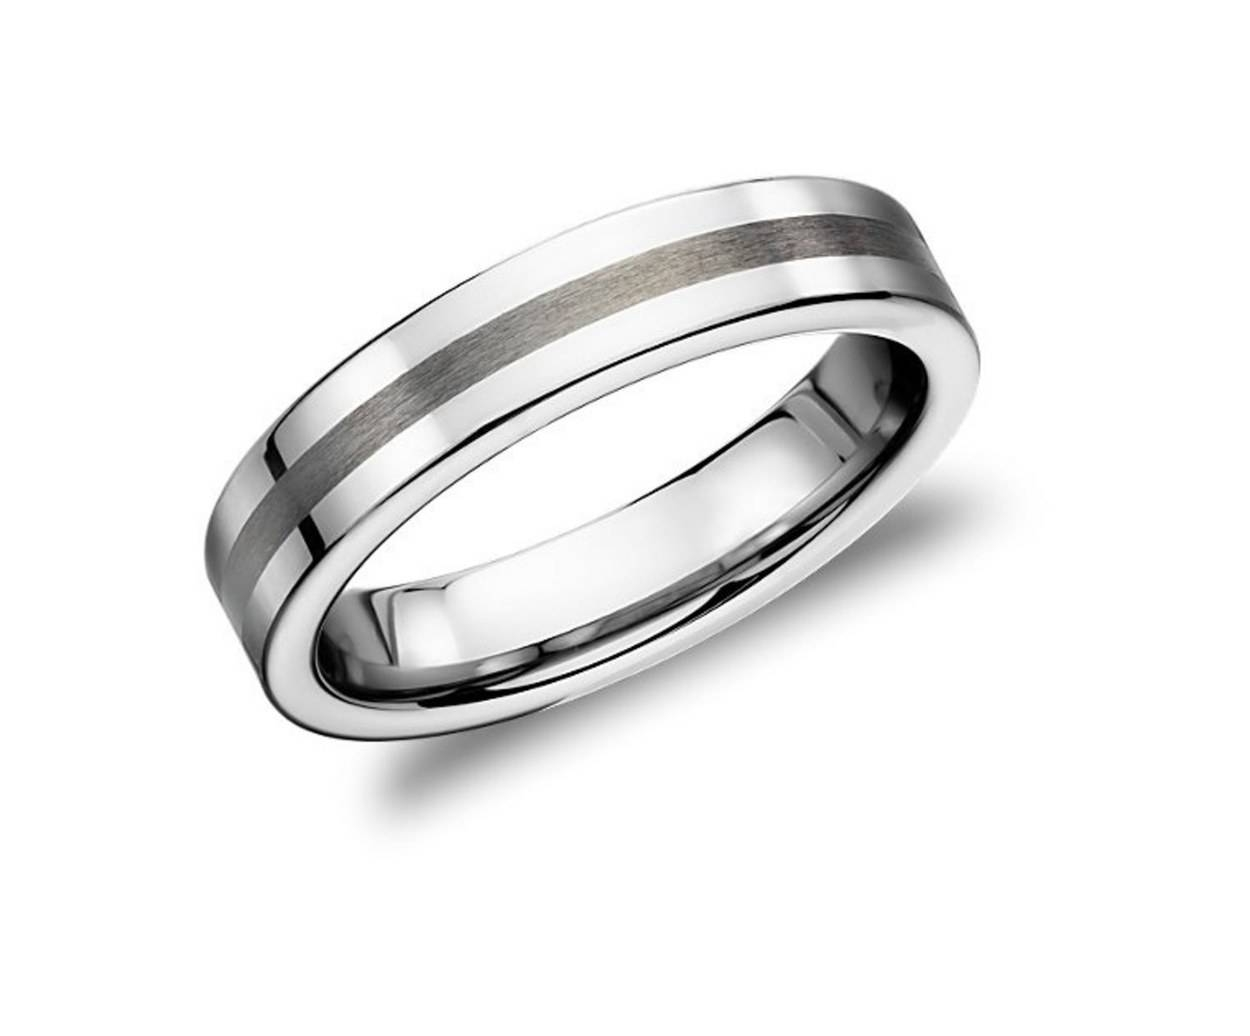 15 Men's Wedding Bands Your Groom Won't Want To Take Off | Glamour In Wedding Rings For Groom (View 2 of 15)